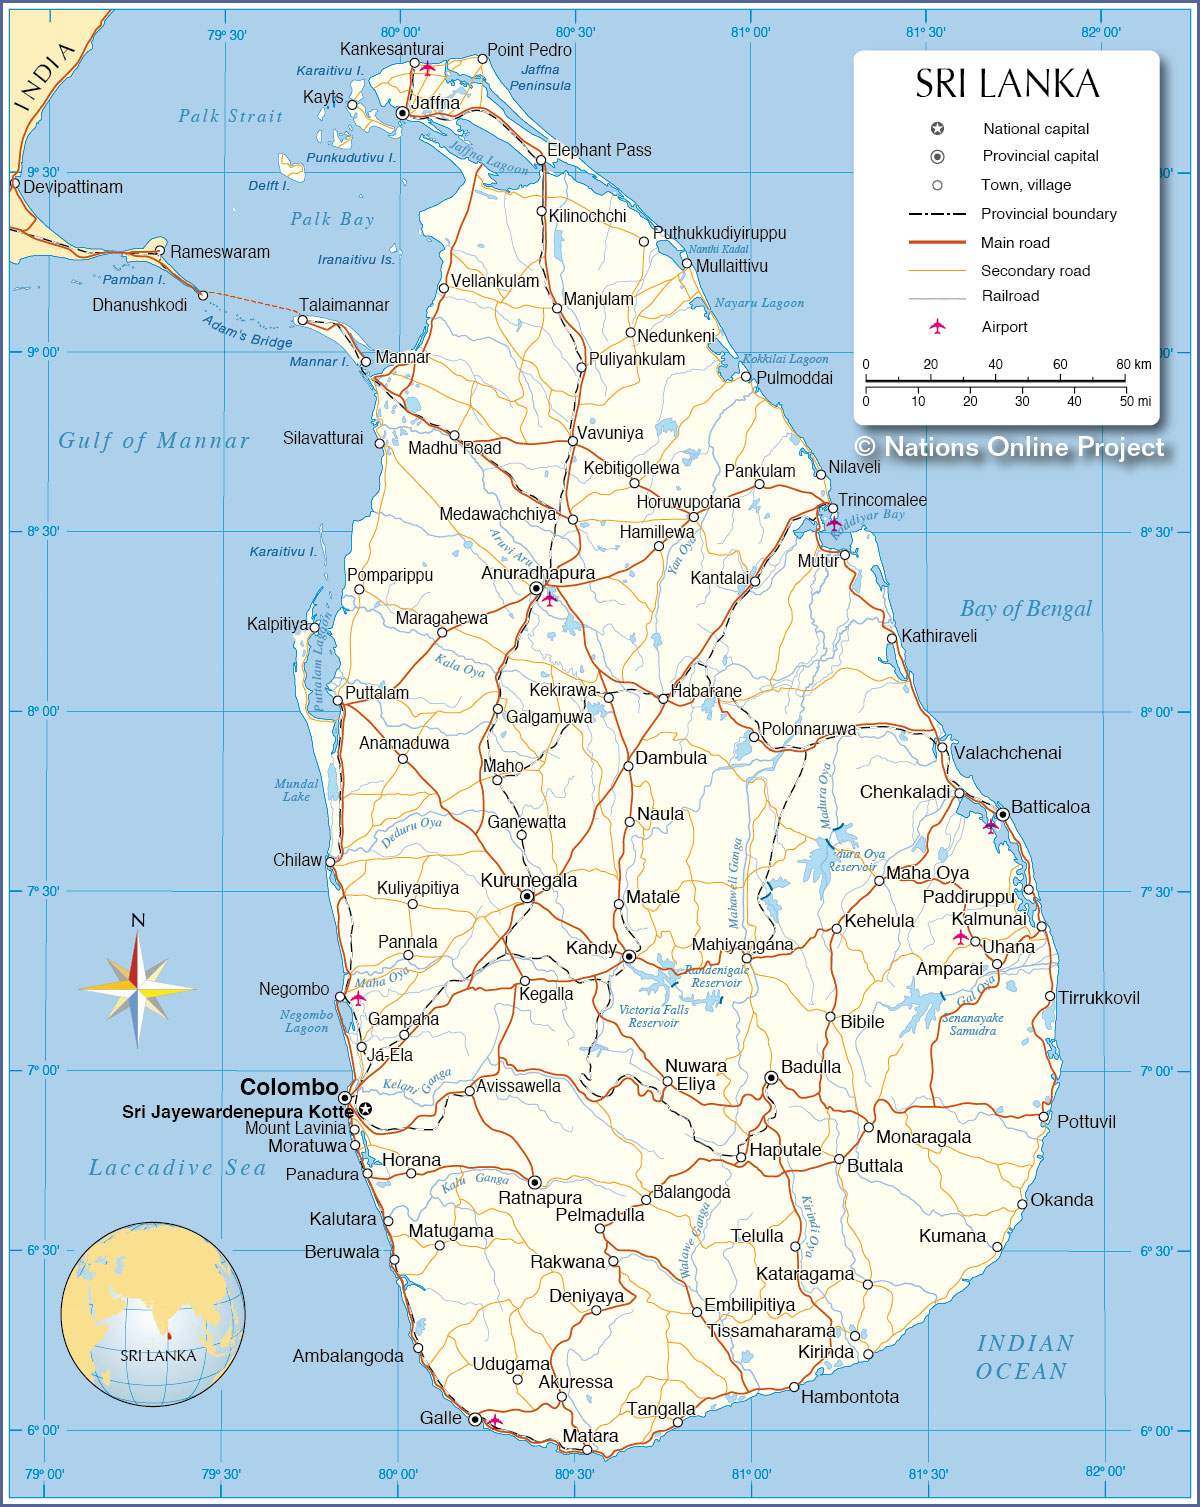 Sri Lanka Political Map.Political Map Of Sri Lanka Nations Online Project